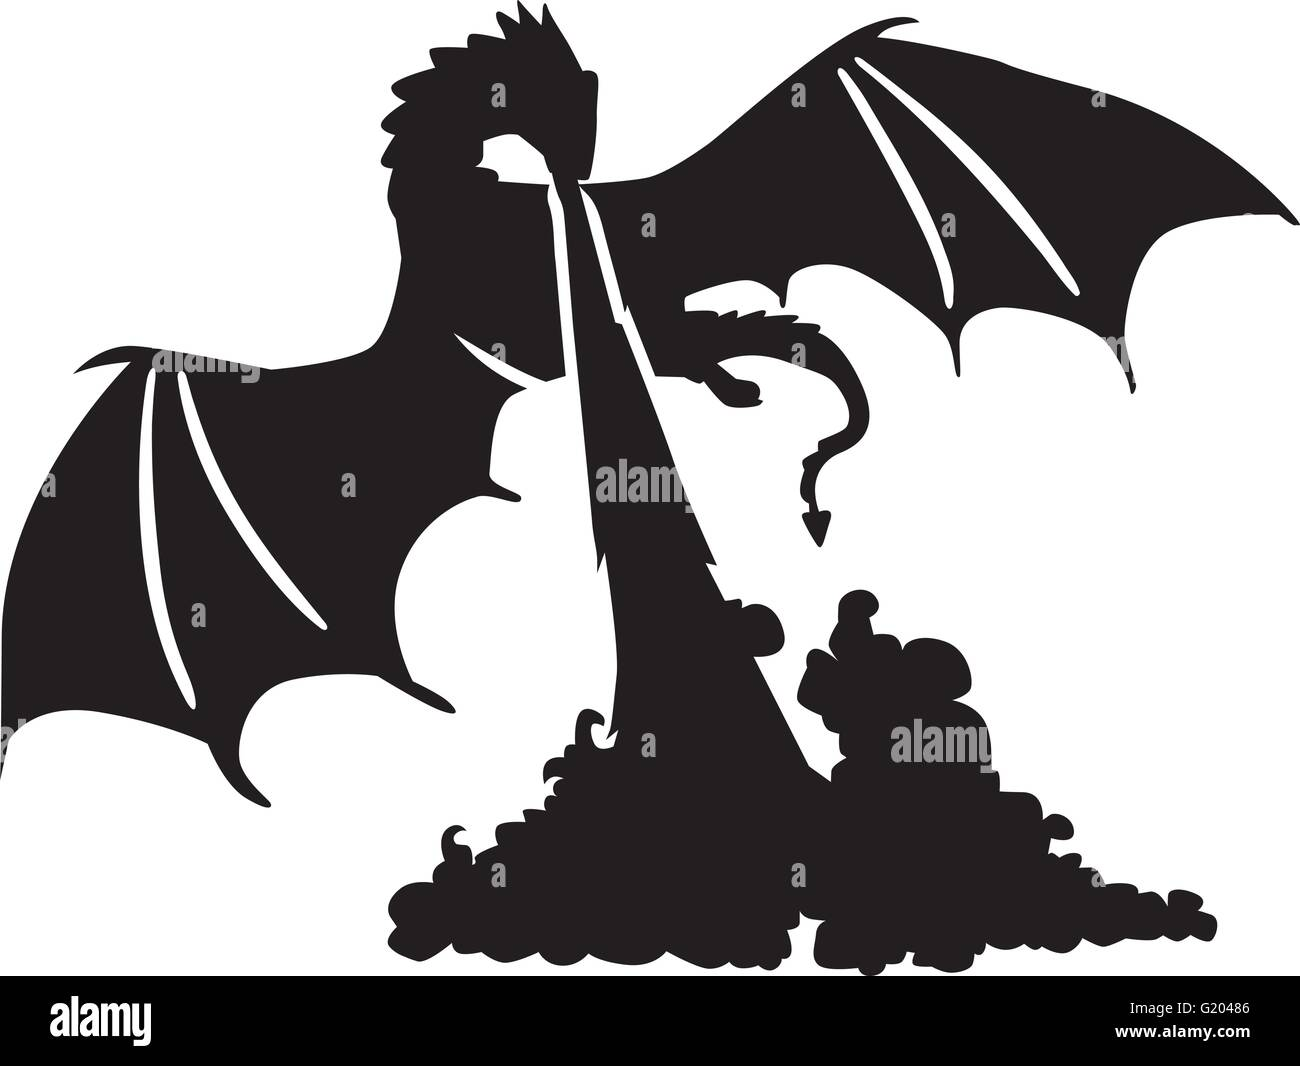 Fire Breathing Stock Vector Images - Alamy